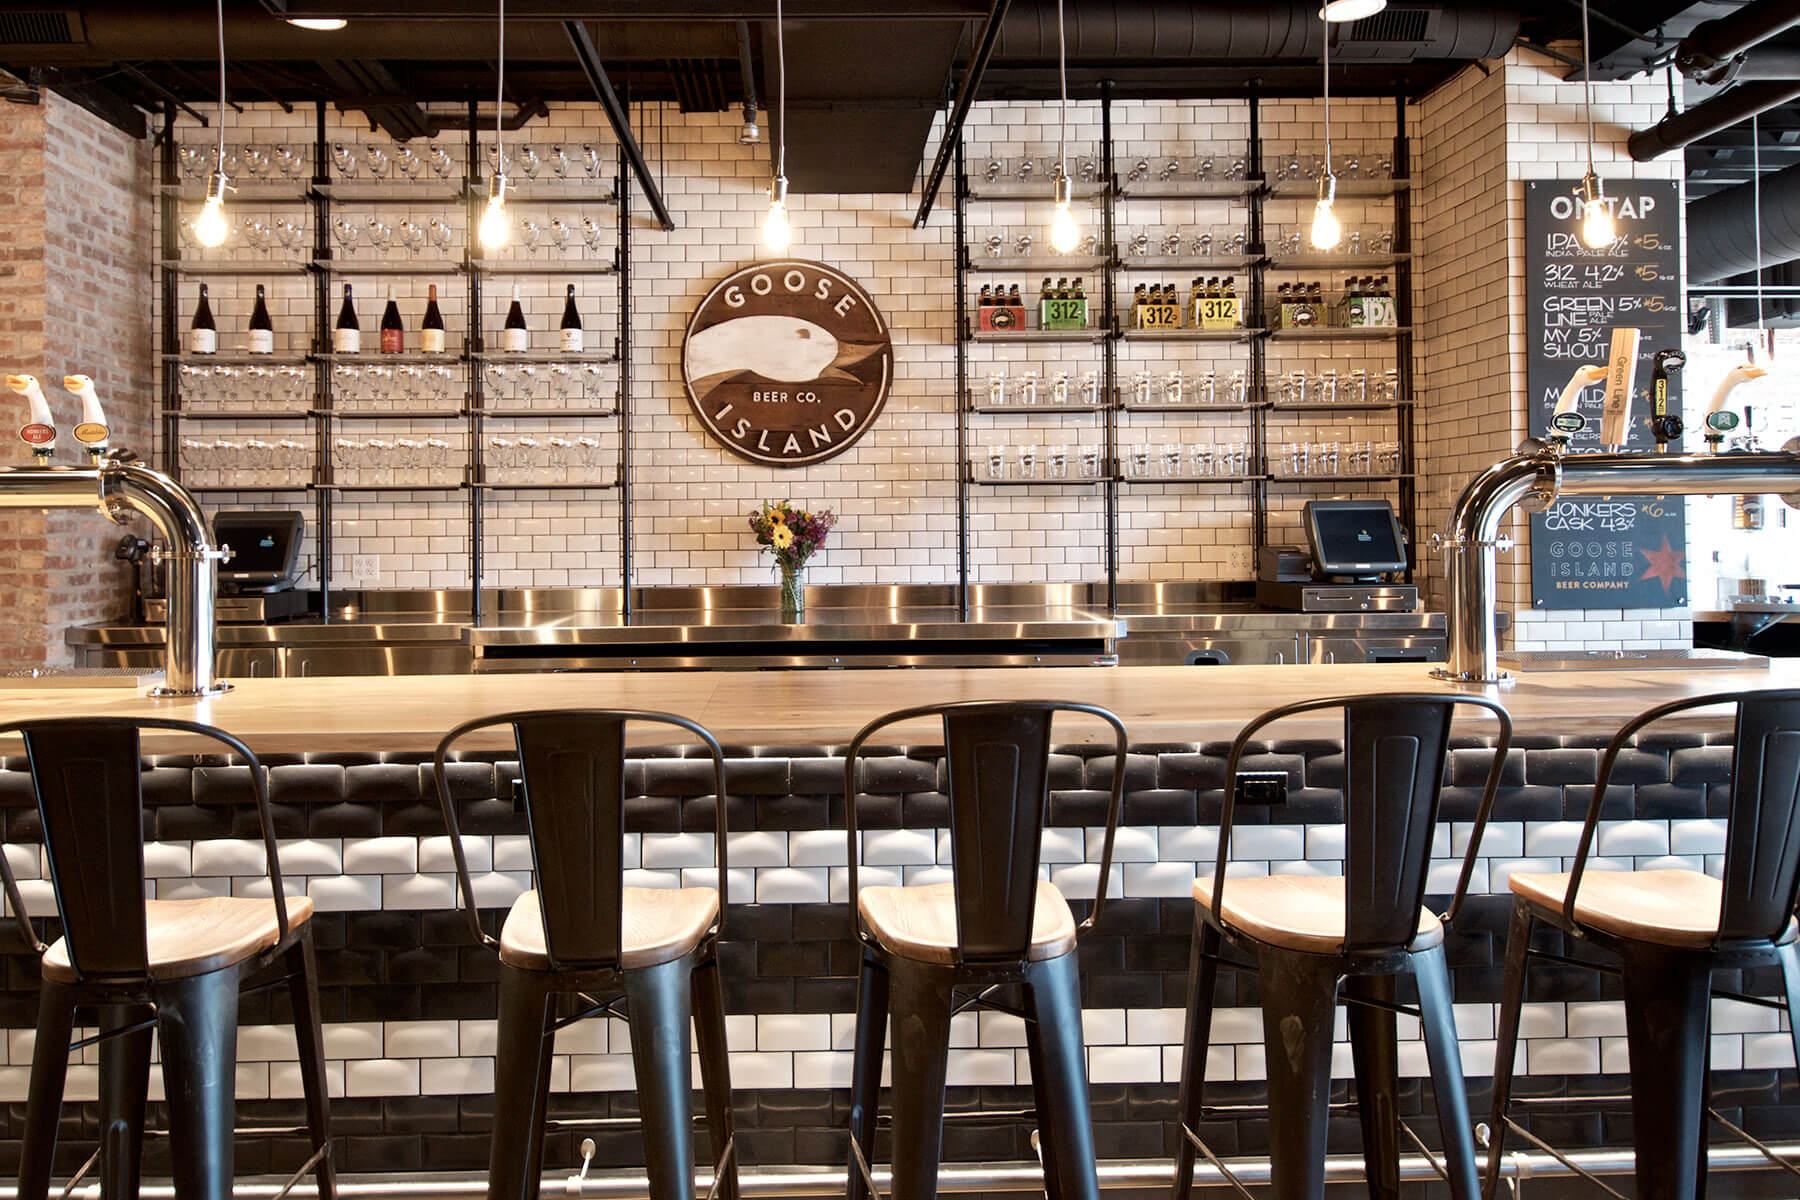 Inside the Fulton Street taproom at Goose Island Beer Co. in Chicago, Illinois